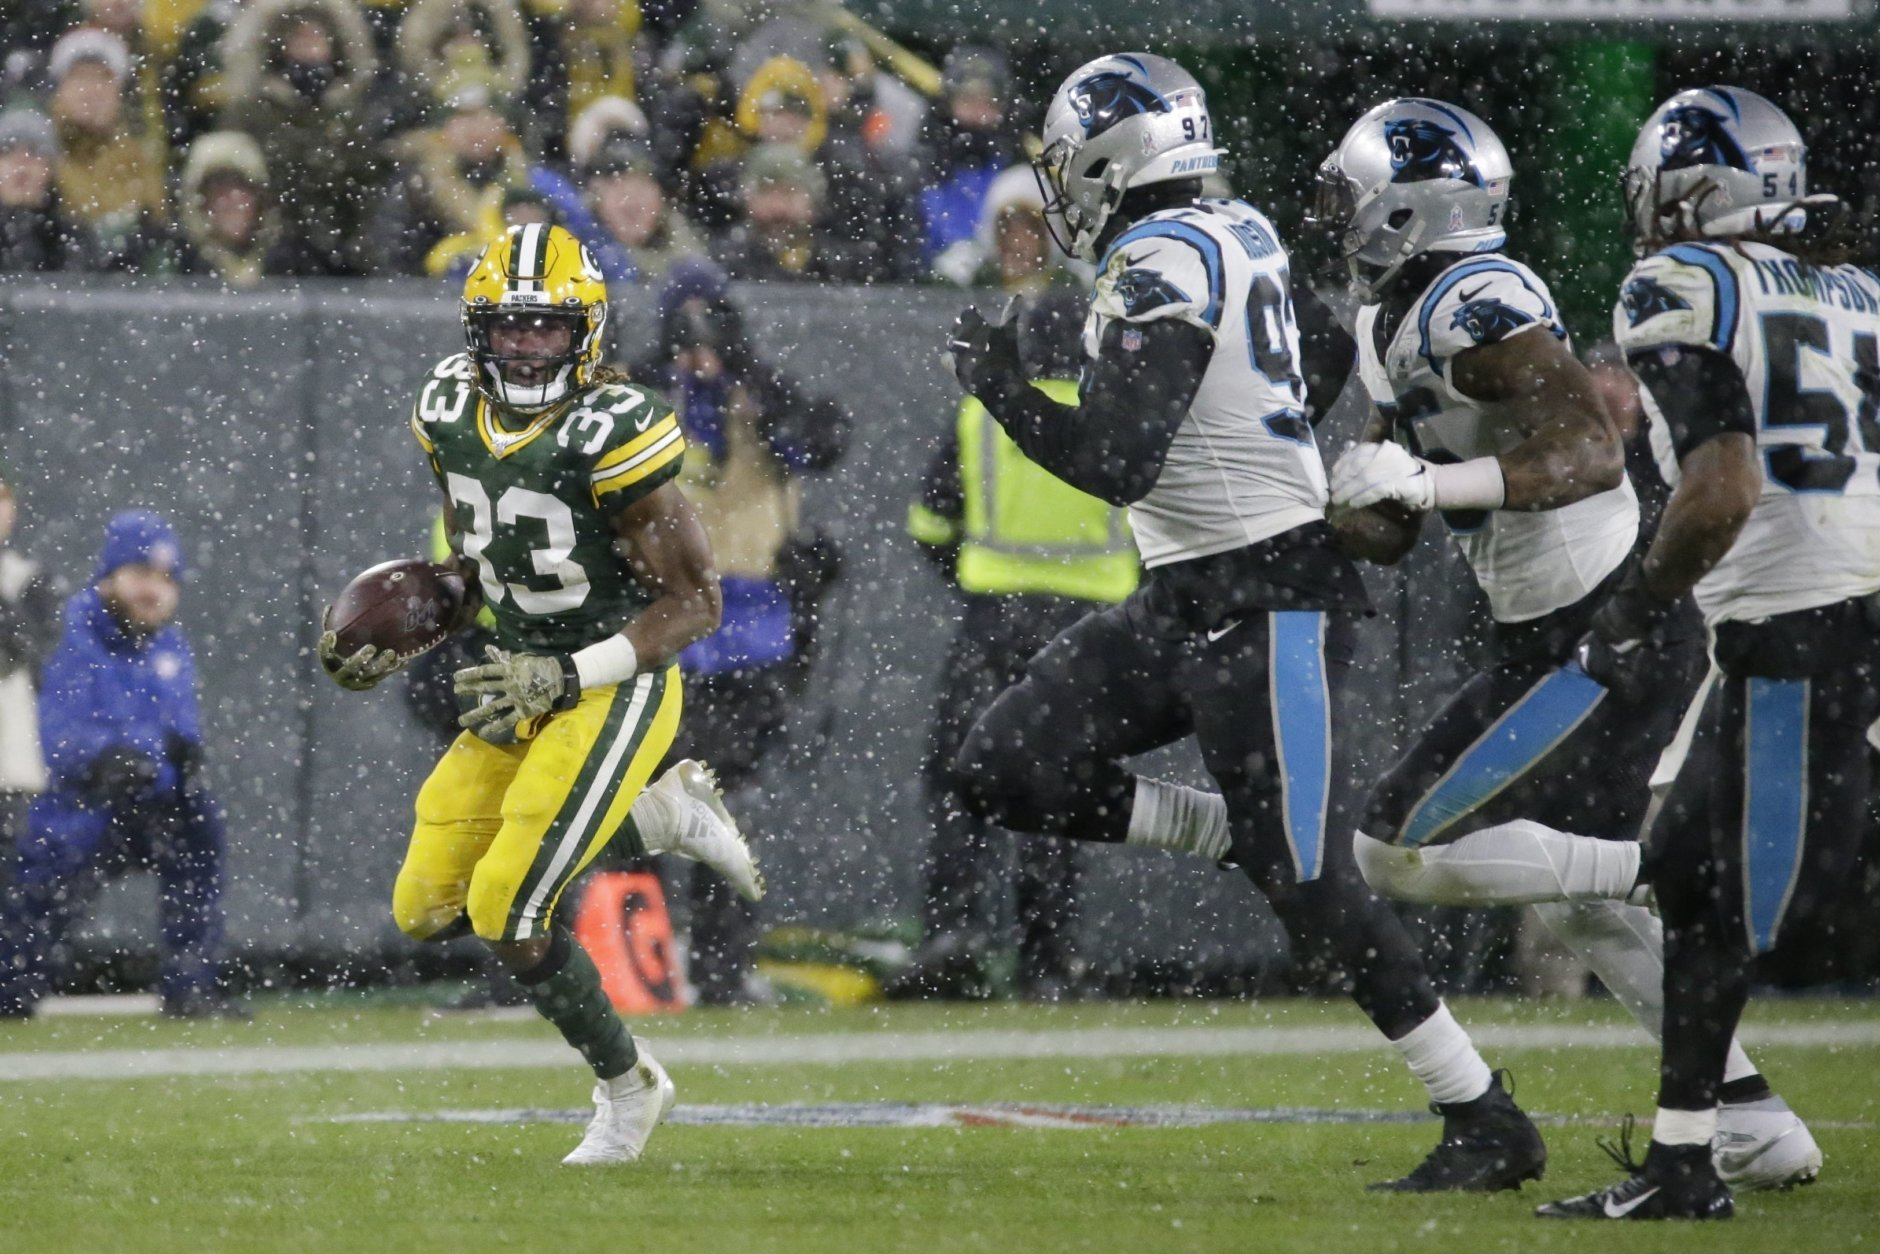 <p><em><strong>Panthers 16</strong></em><br /> <em><strong>Packers 24</strong></em></p> <p>What&#8217;s old: Riverboat Ron Rivera gambles late by going for a rushing touchdown in the final seconds, falling short in snowy Green Bay.</p> <p>What&#8217;s new: The Packers enter their bye week 8-2 with Aaron Rodgers playing second fiddle to Aaron Jones and the best defense they&#8217;ve had in years. What a time to be a Pack fan.</p>